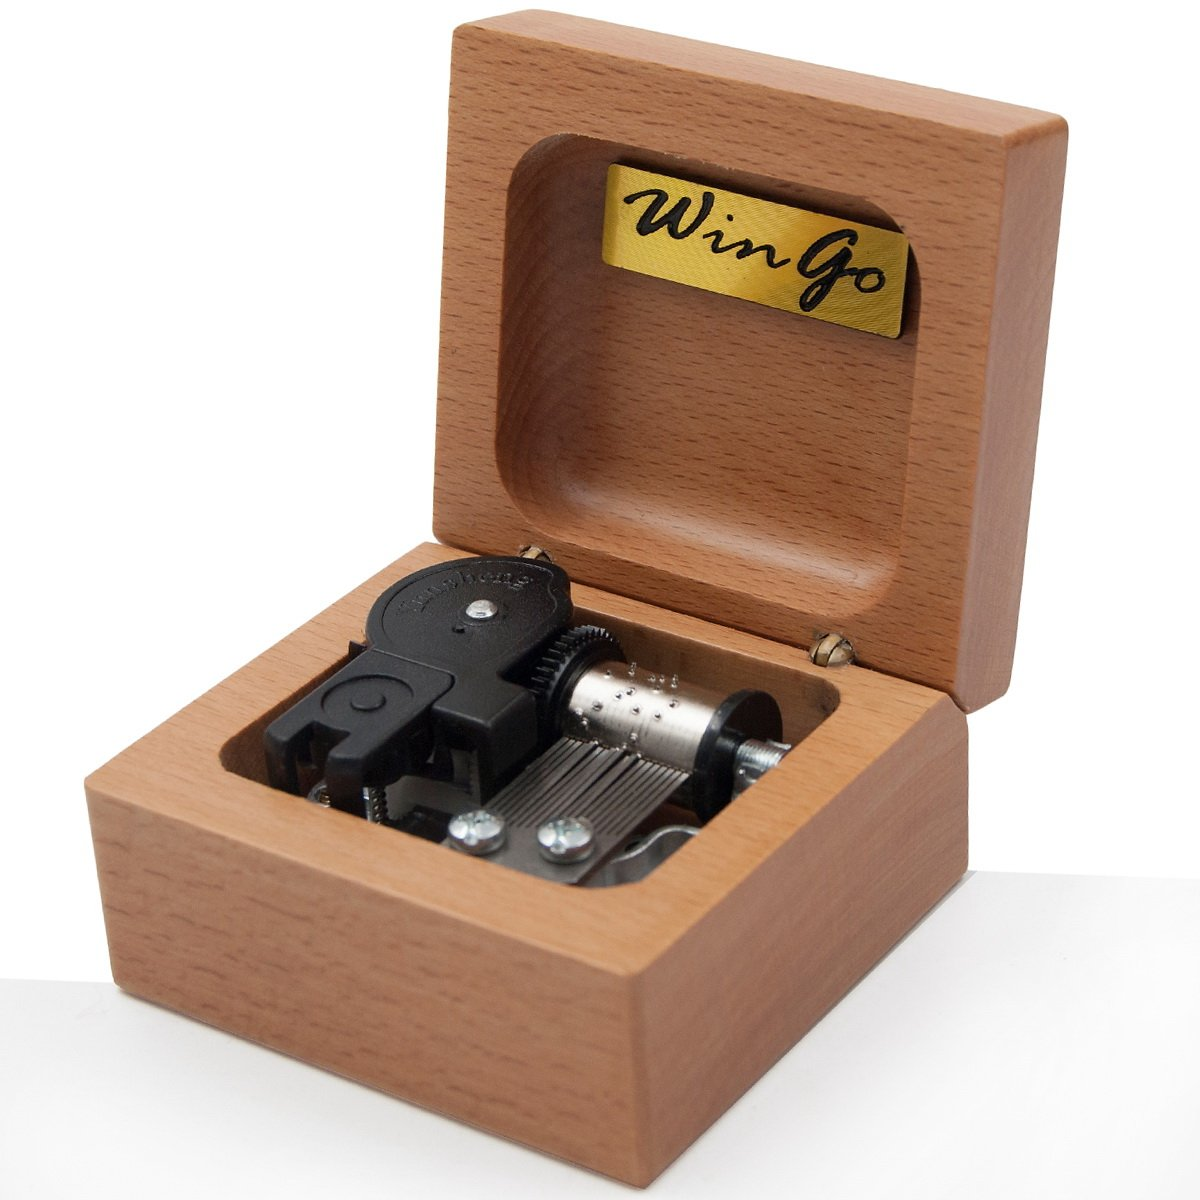 Mini 18 note wind-up Beech Wooden Music Box Tune of You Are My Sunshine For Christmas/Birthday/Valentine's day by Wingostore (Image #1)